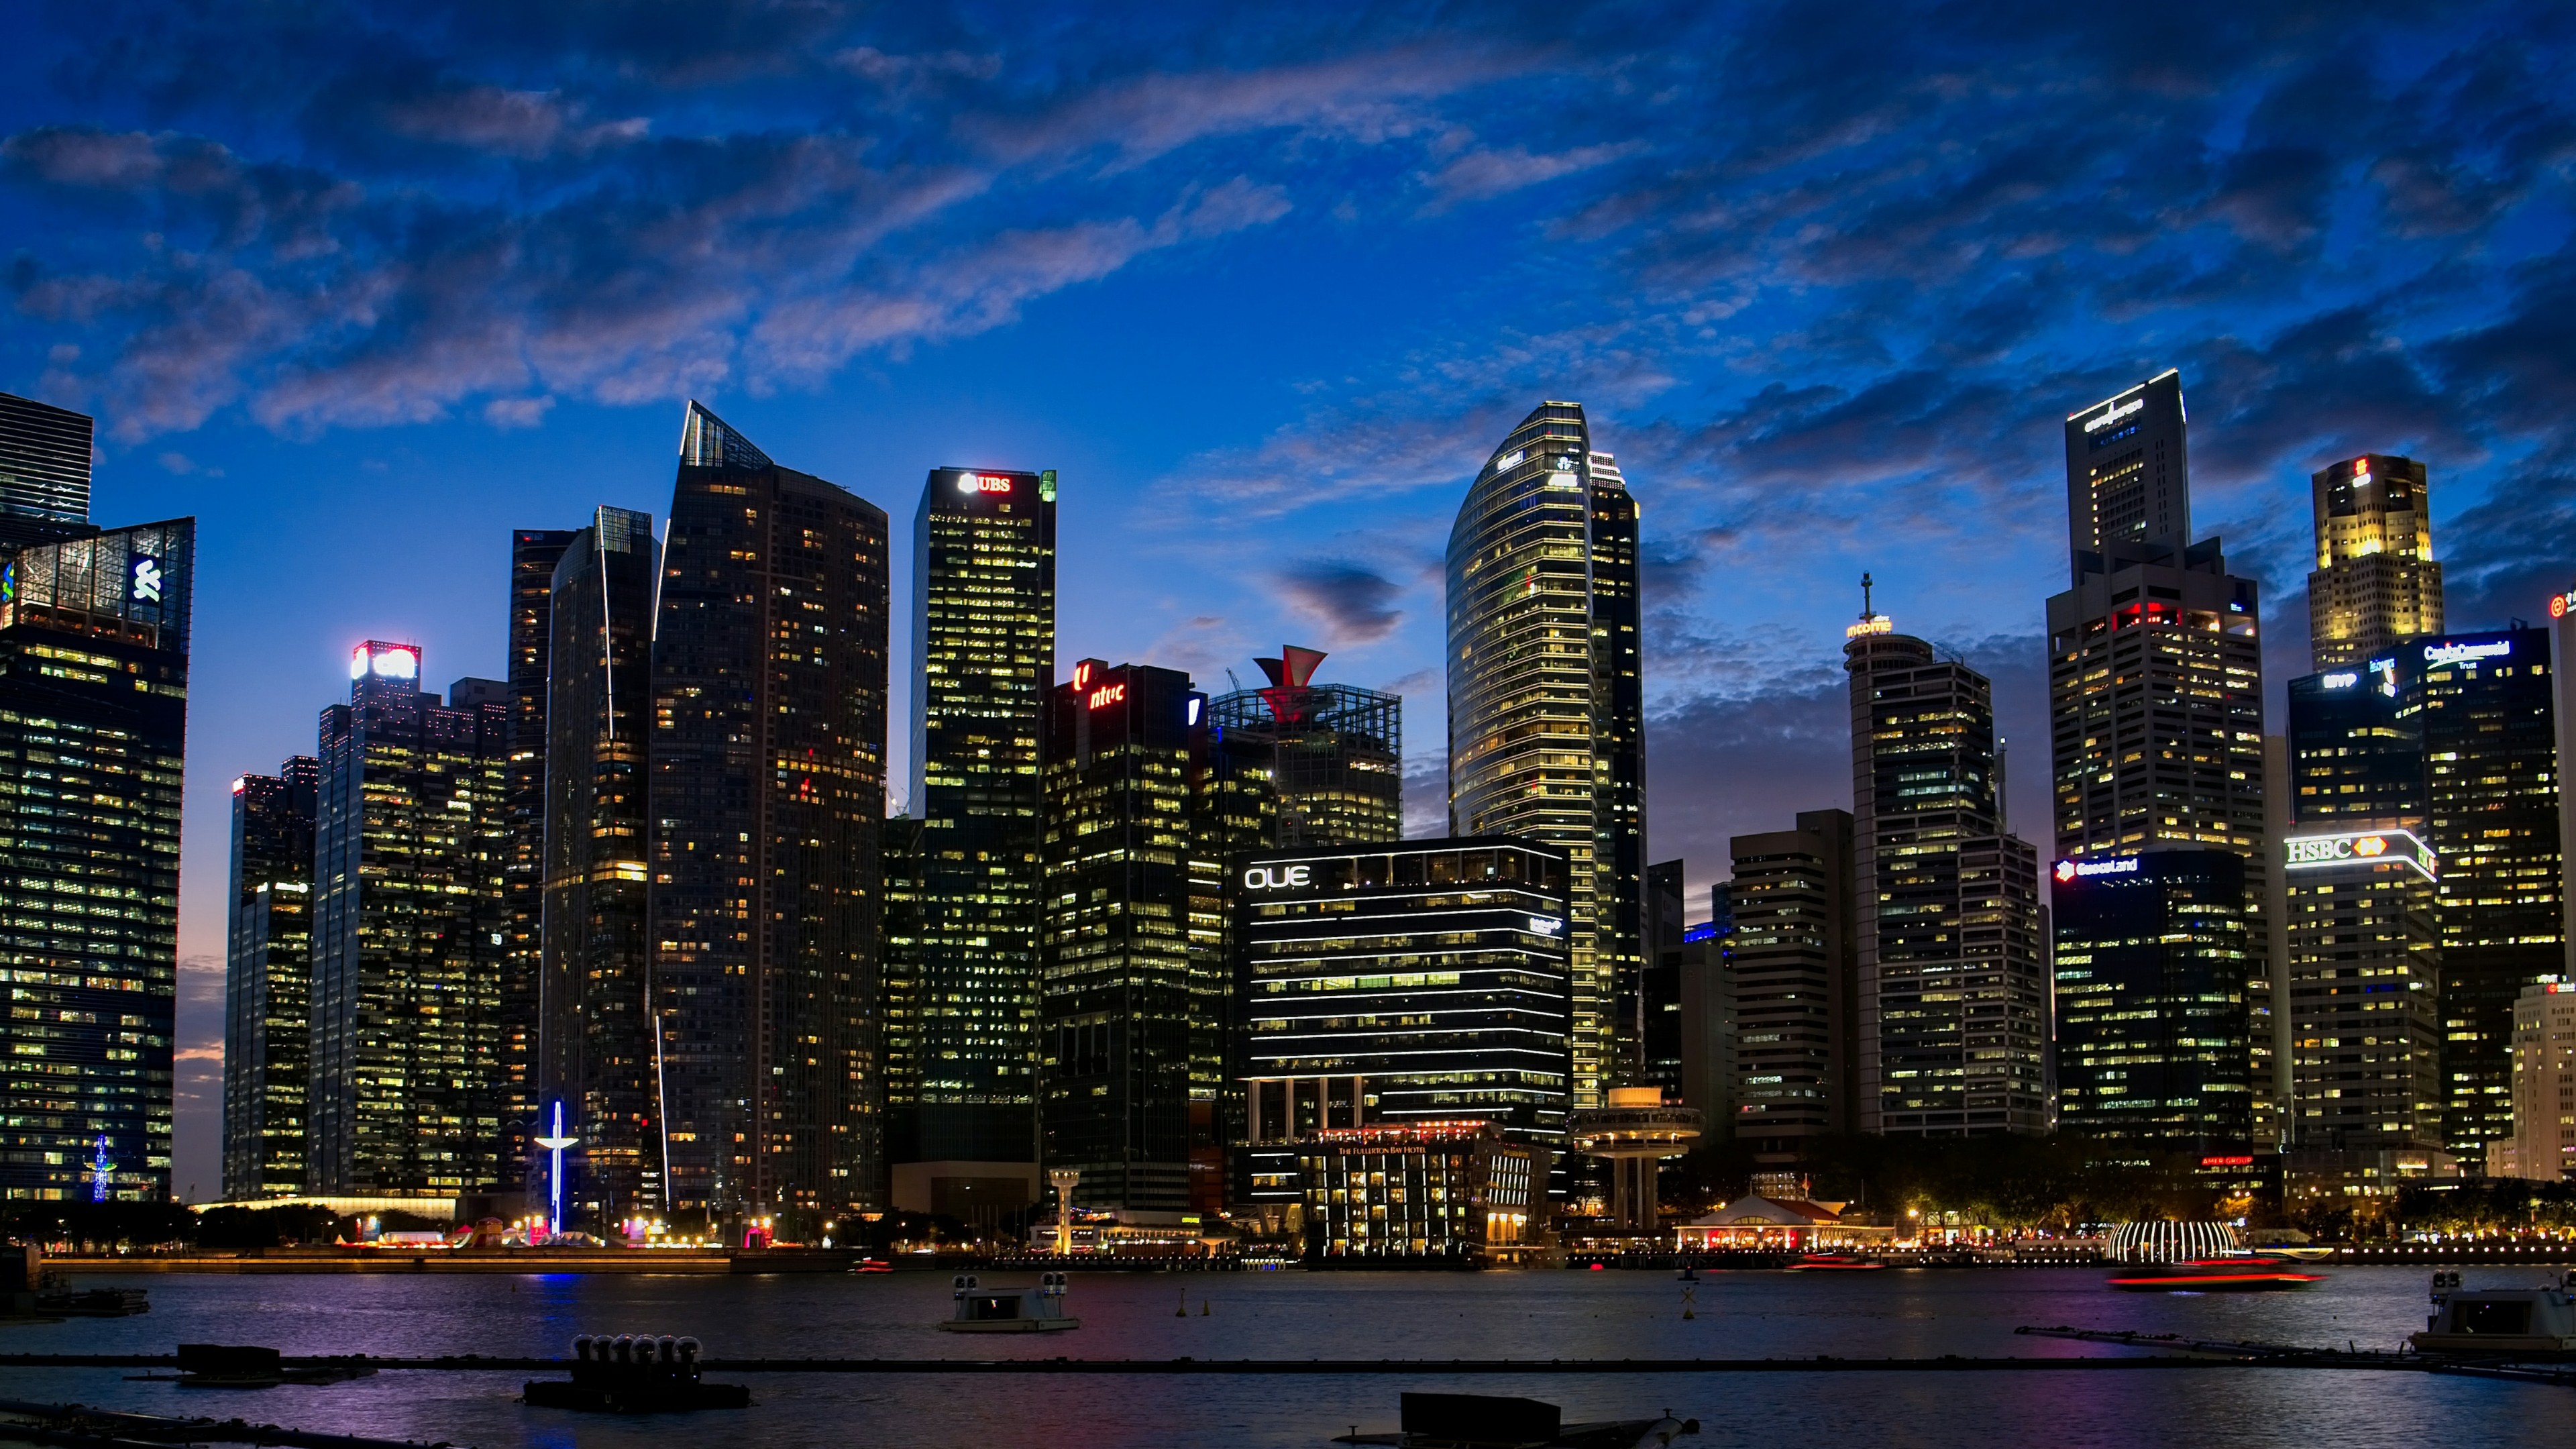 Singapore at dusk wallpaper